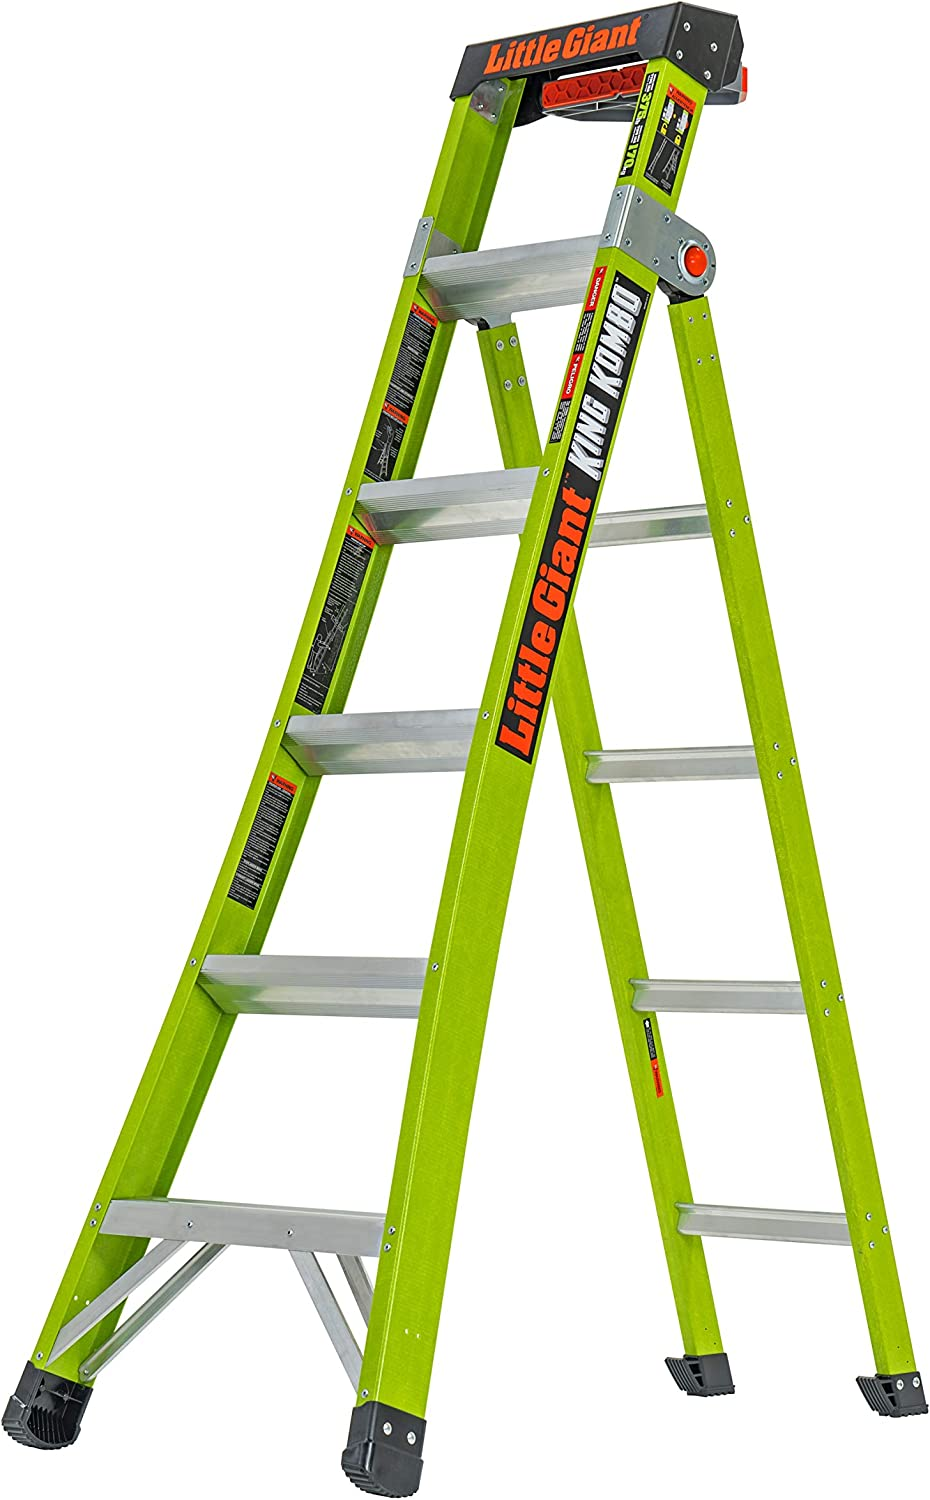 Little Giant Ladder Systems 13610-001 King Kombo Professional 6' - 10', Green